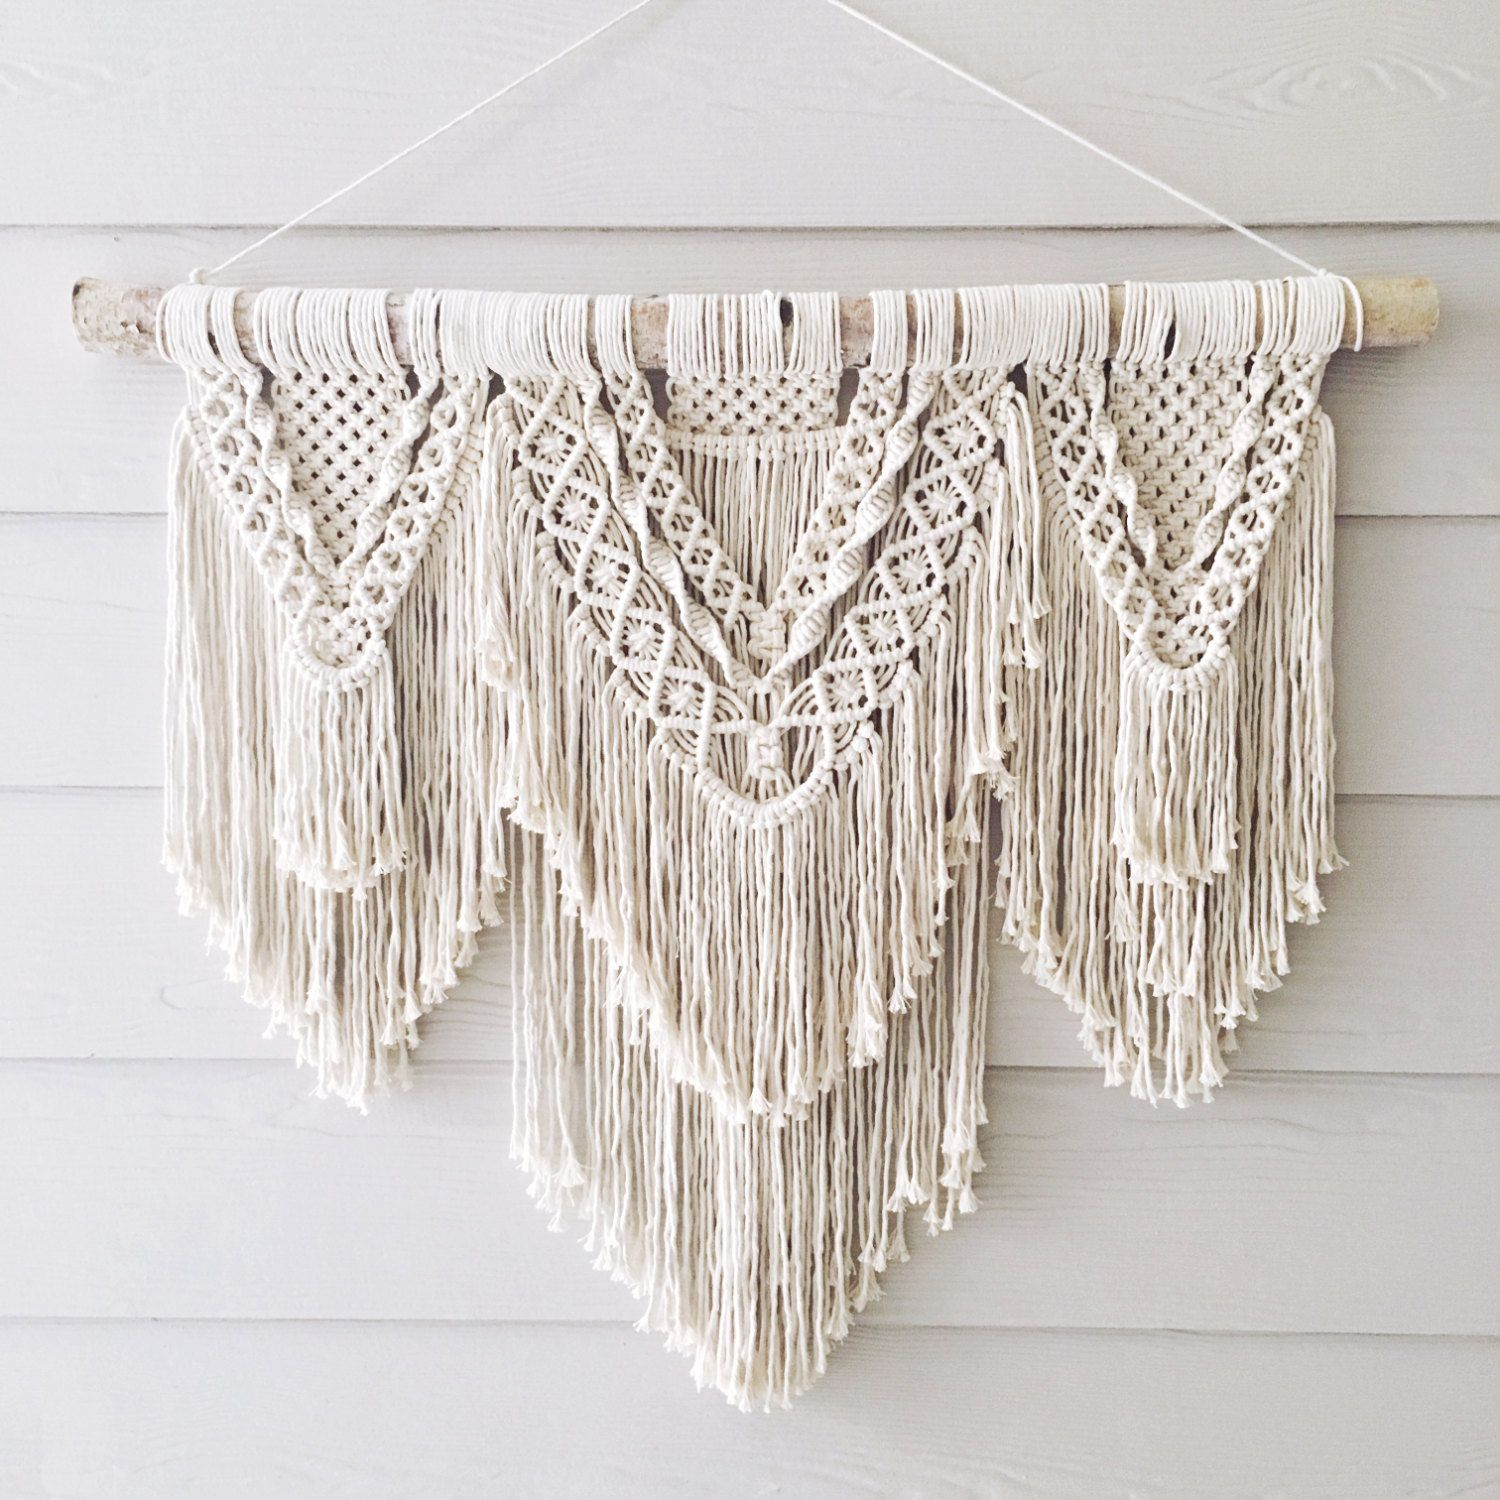 Beauty Extra Large Macrame Wall Hanging Macrame